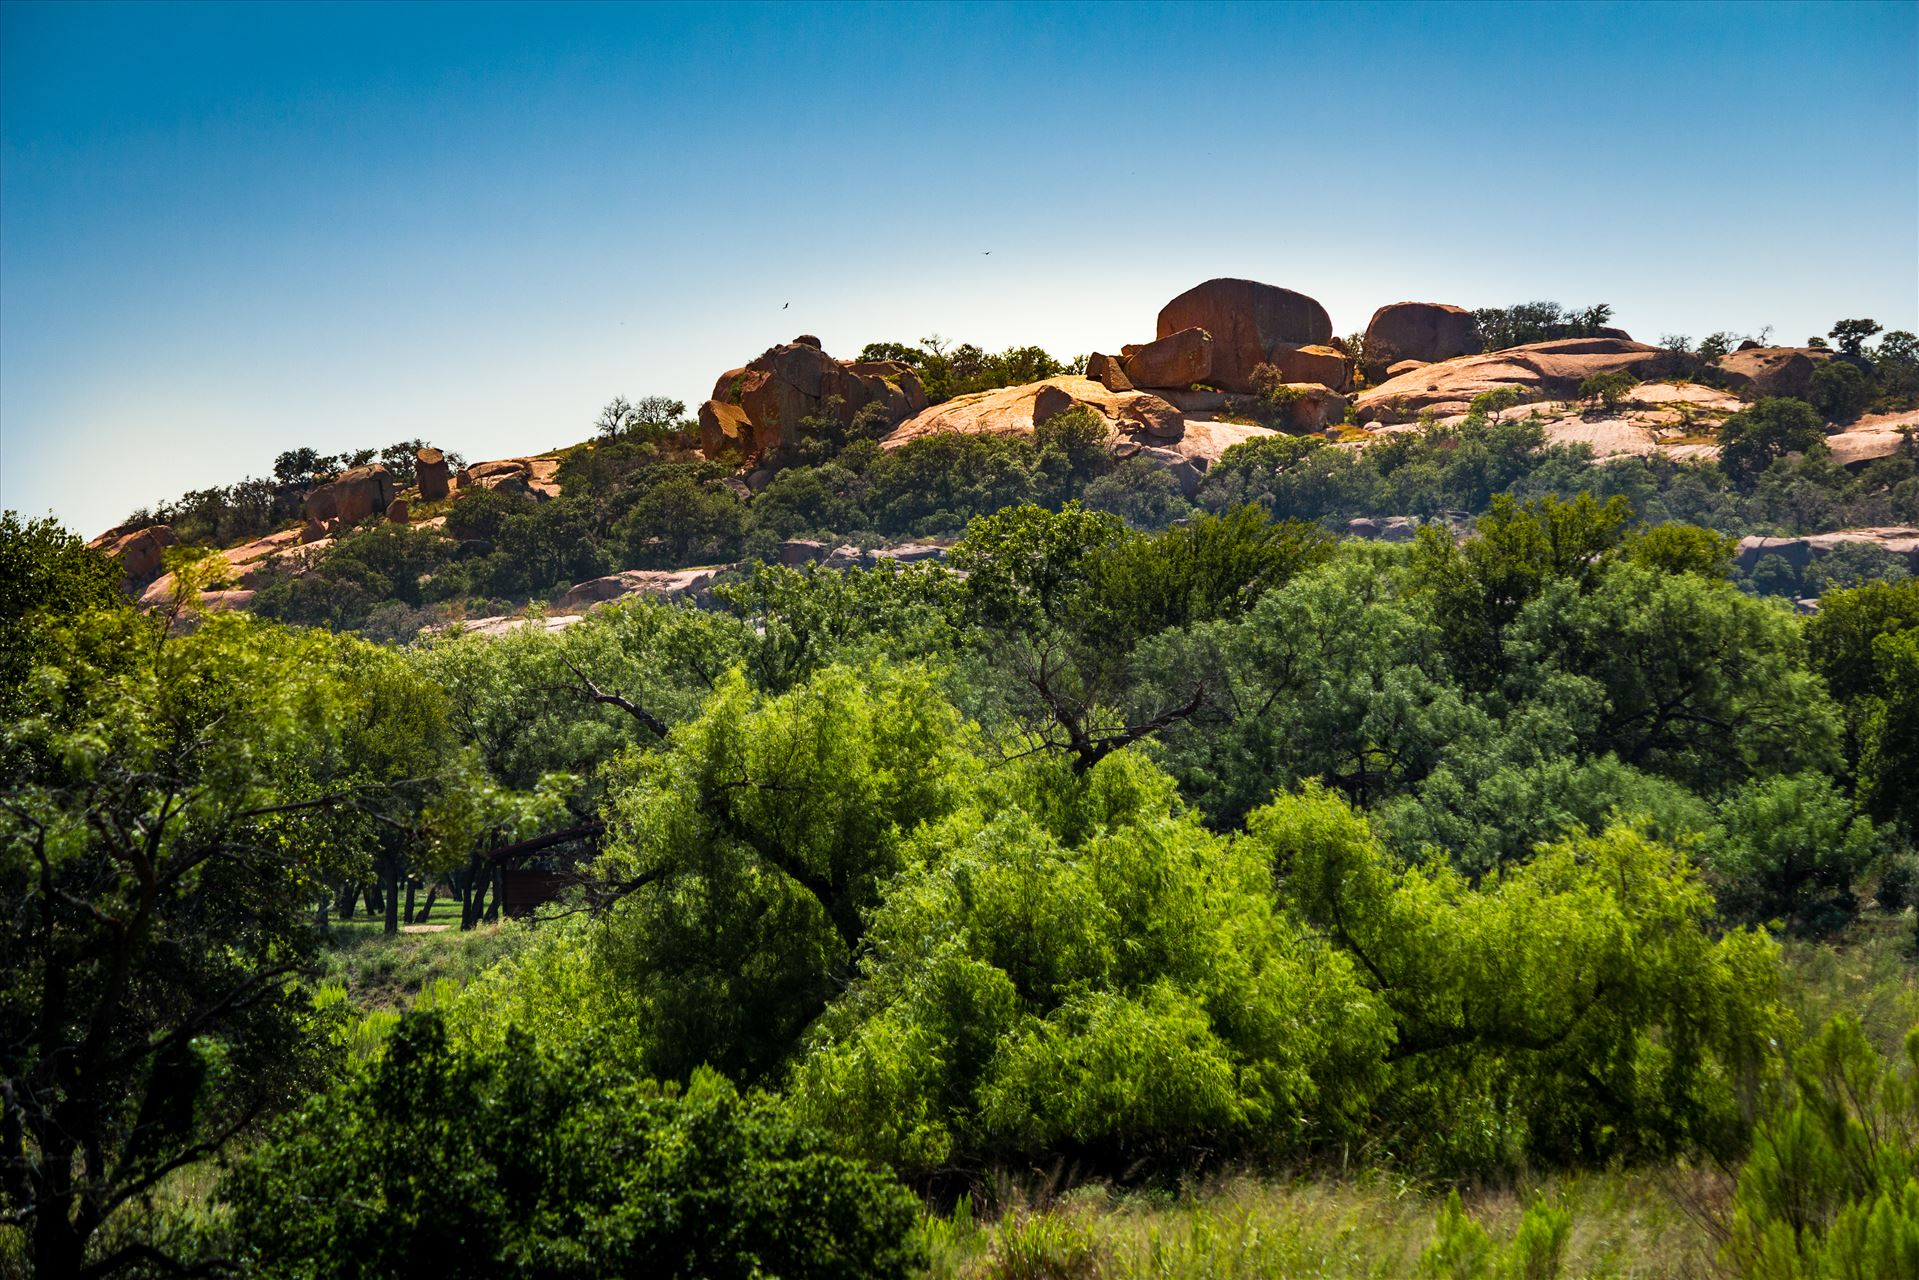 20130723-Enchanted Rock-DSLR-002.jpg